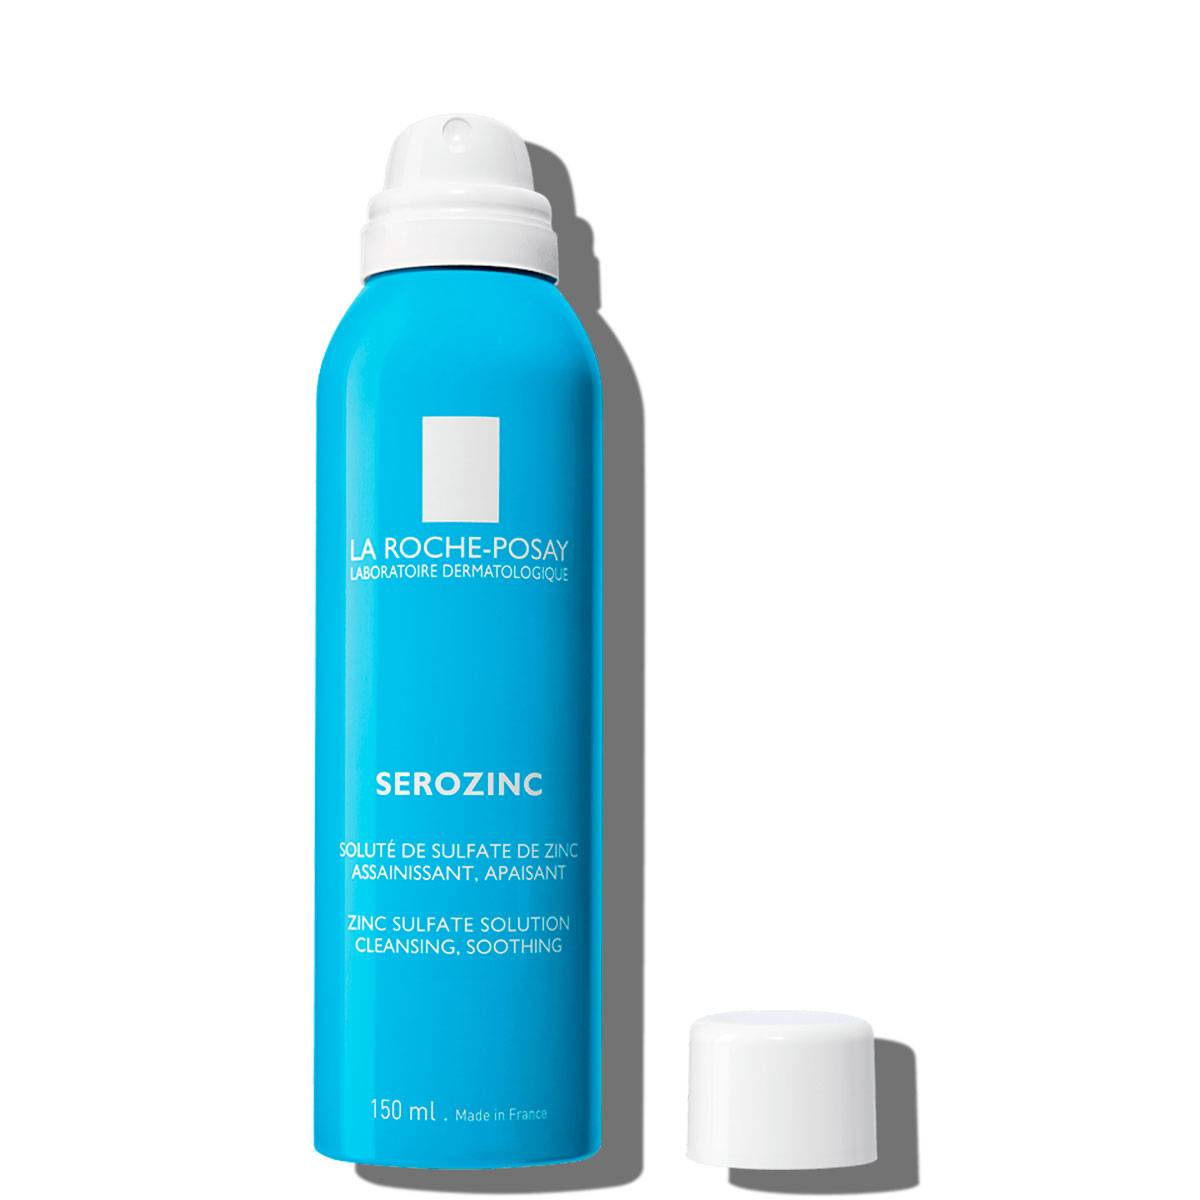 Serozinc 150ml Zinc Sulfate Soothing Cleansing Solution